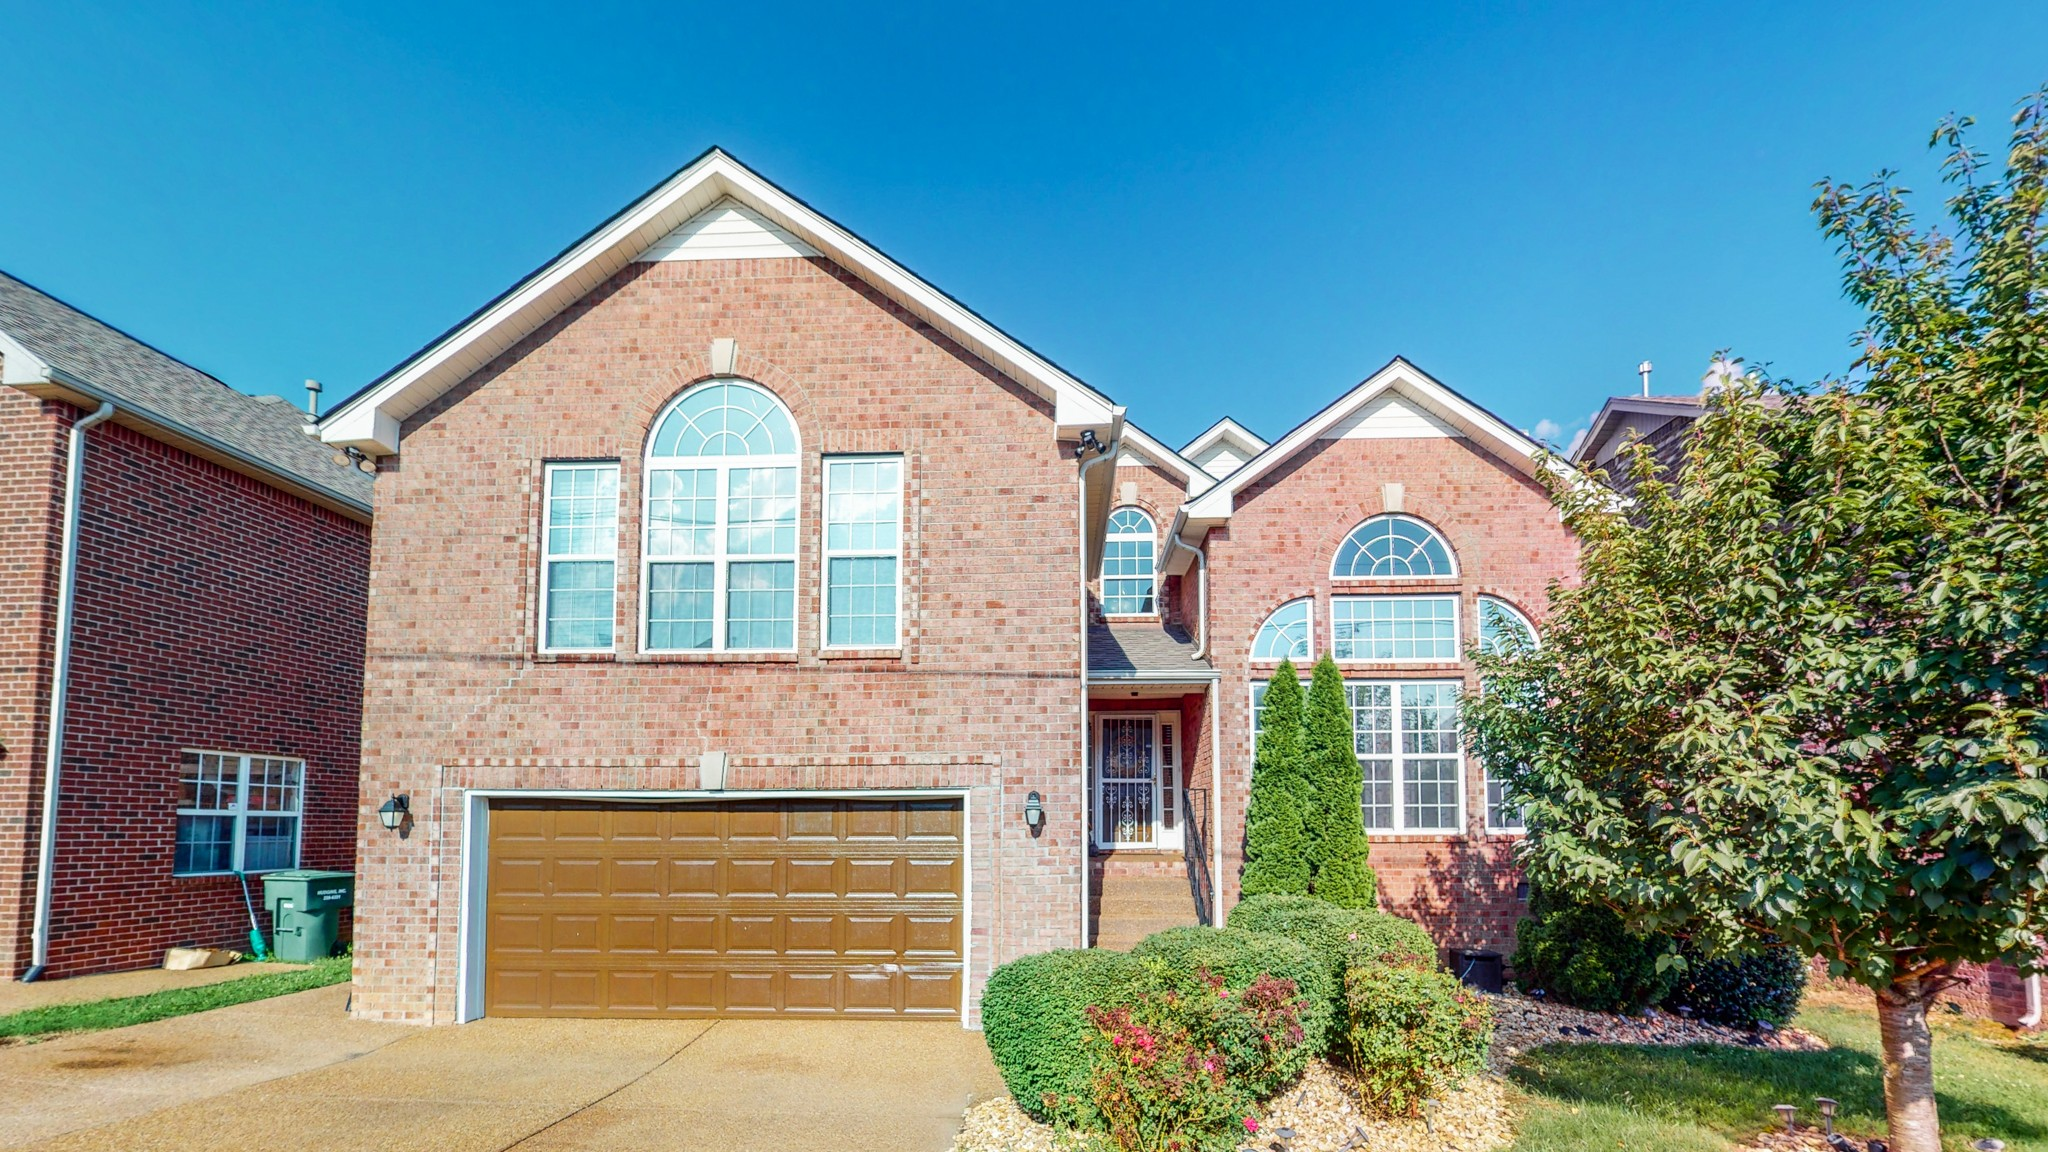 7404 Tarmac Way Property Photo - Nashville, TN real estate listing